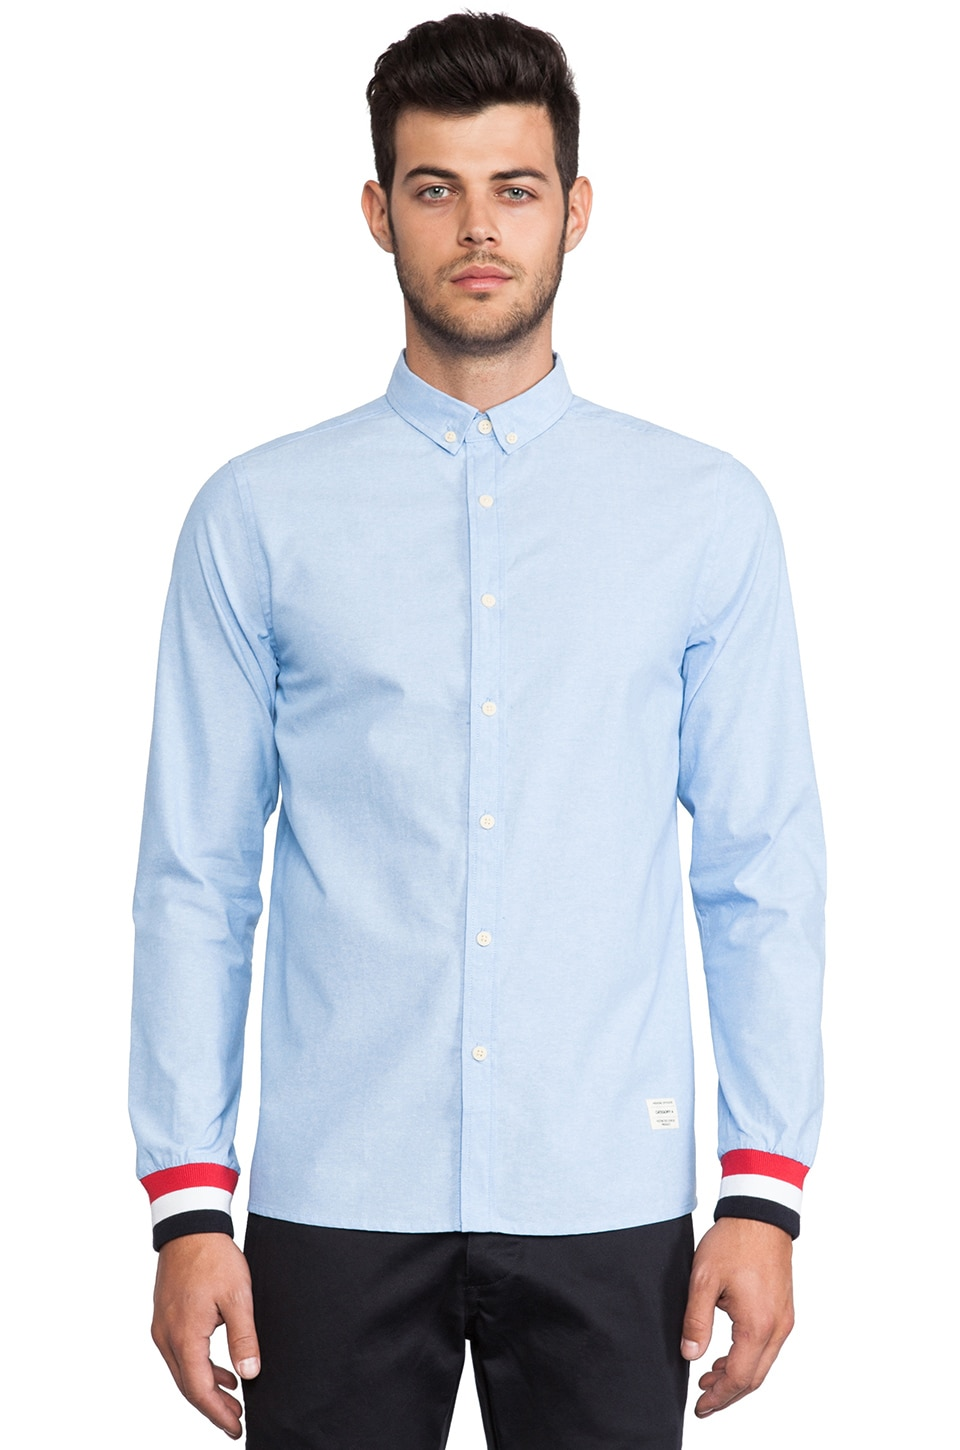 Weekend Offender Kempton Shirt in Blue